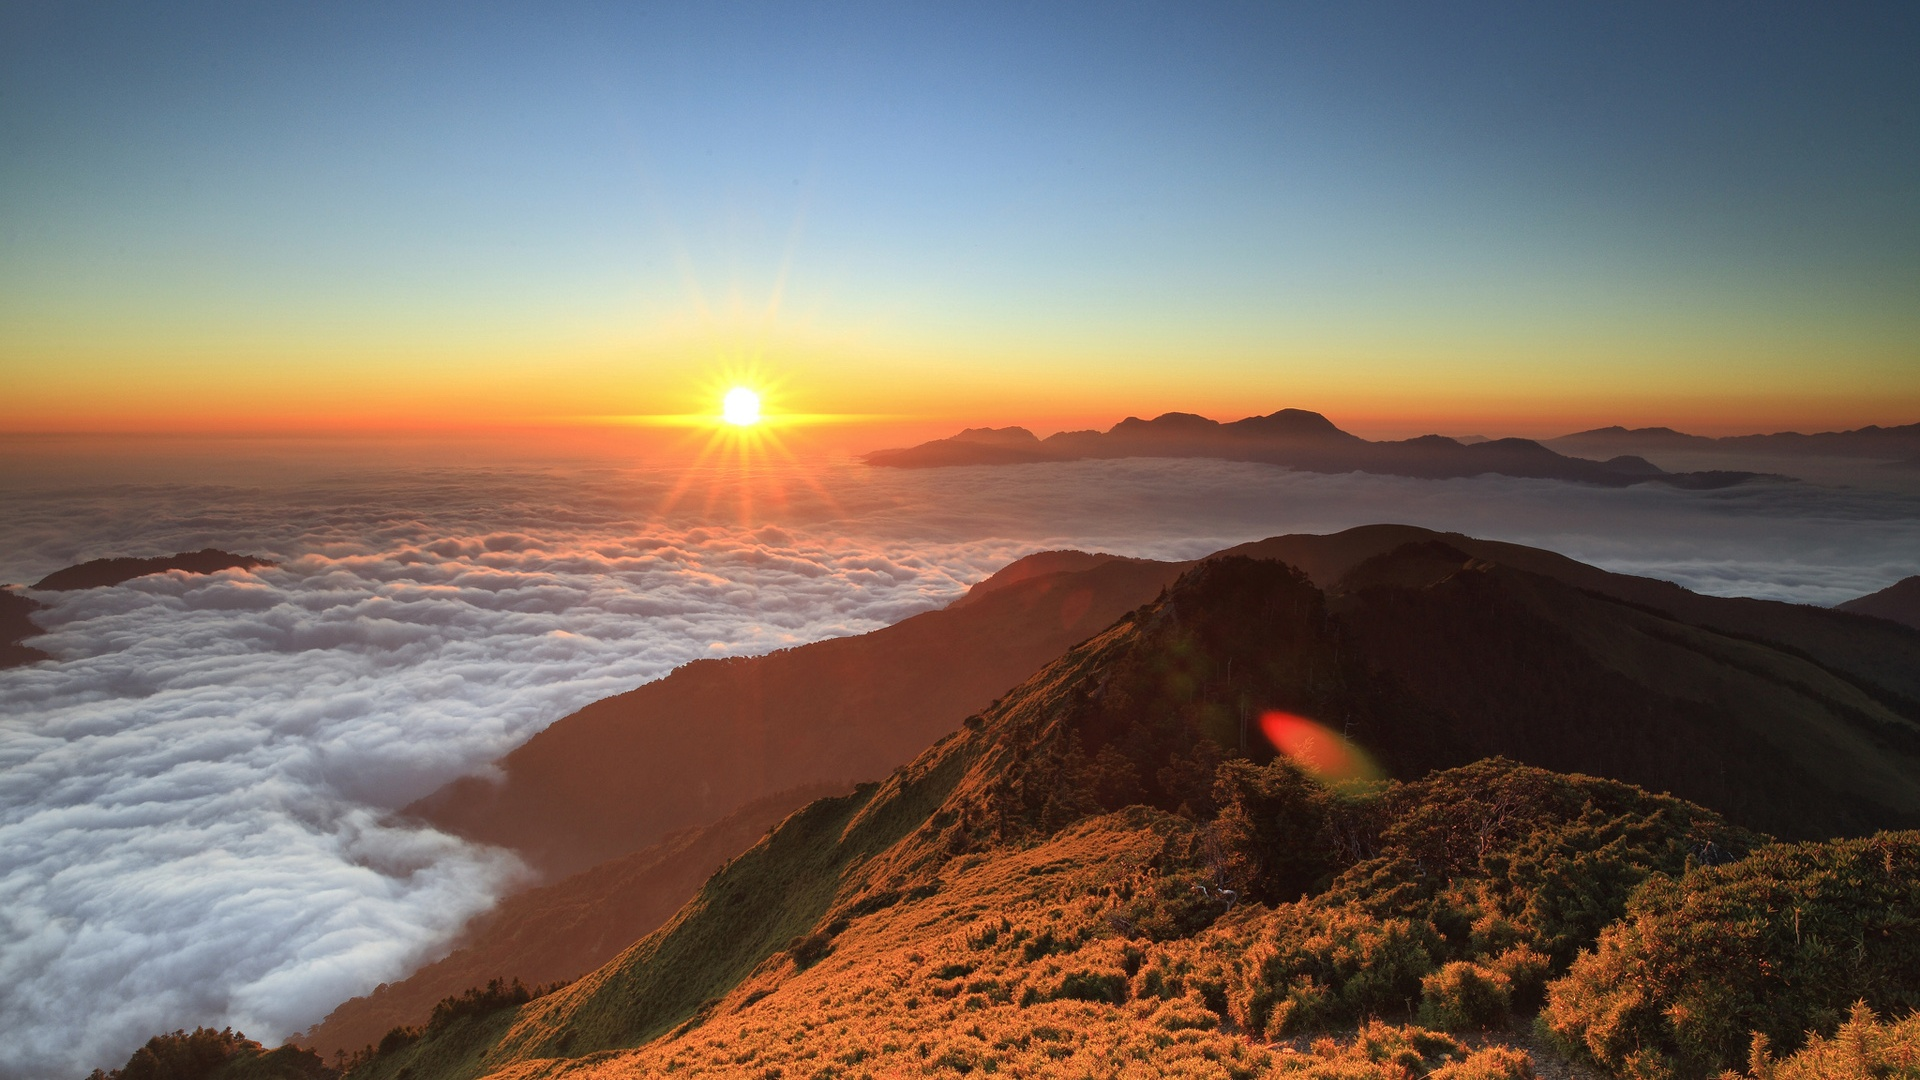 Fantastic Wallpaper Mountain Sun - High-altitude-mountain-sunrise-floating-clouds-sun_1920x1080  Collection_924751.jpg